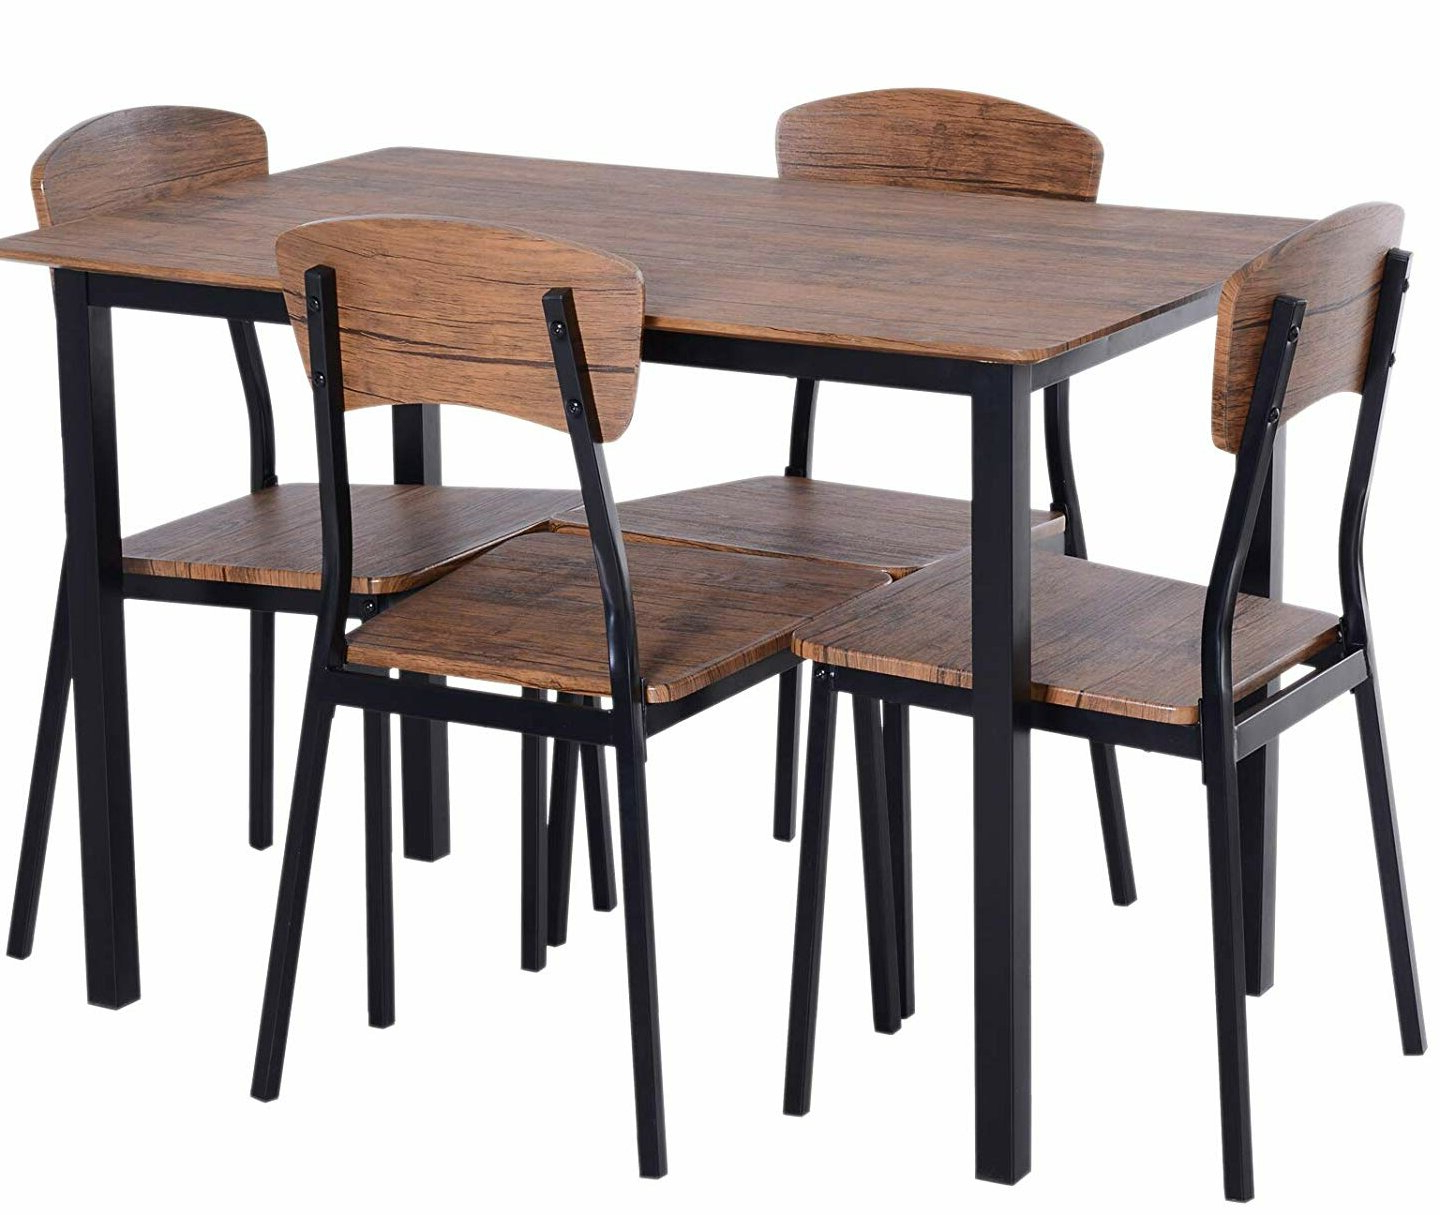 Shepparton Vintage 3 Piece Dining Sets Pertaining To Fashionable Castellanos Modern 5 Piece Counter Height Dining Set (View 14 of 20)